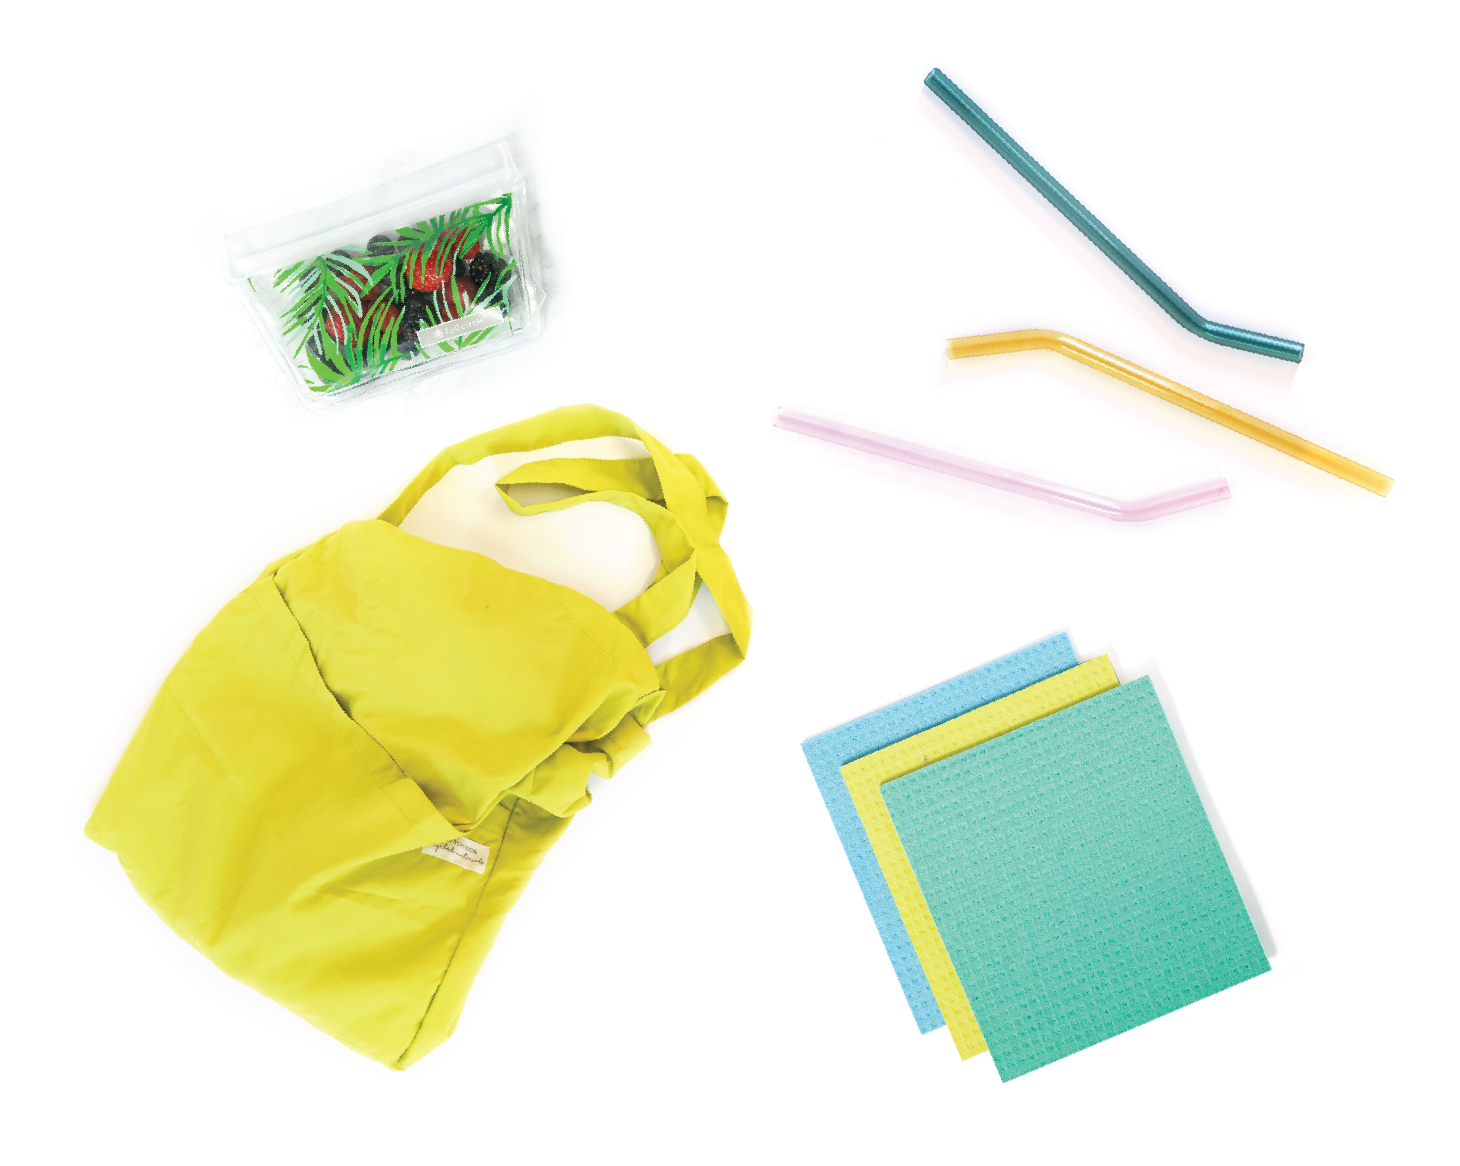 Kit contents which include a natural dish sponge, a produce brush, a reusable snack bag and more